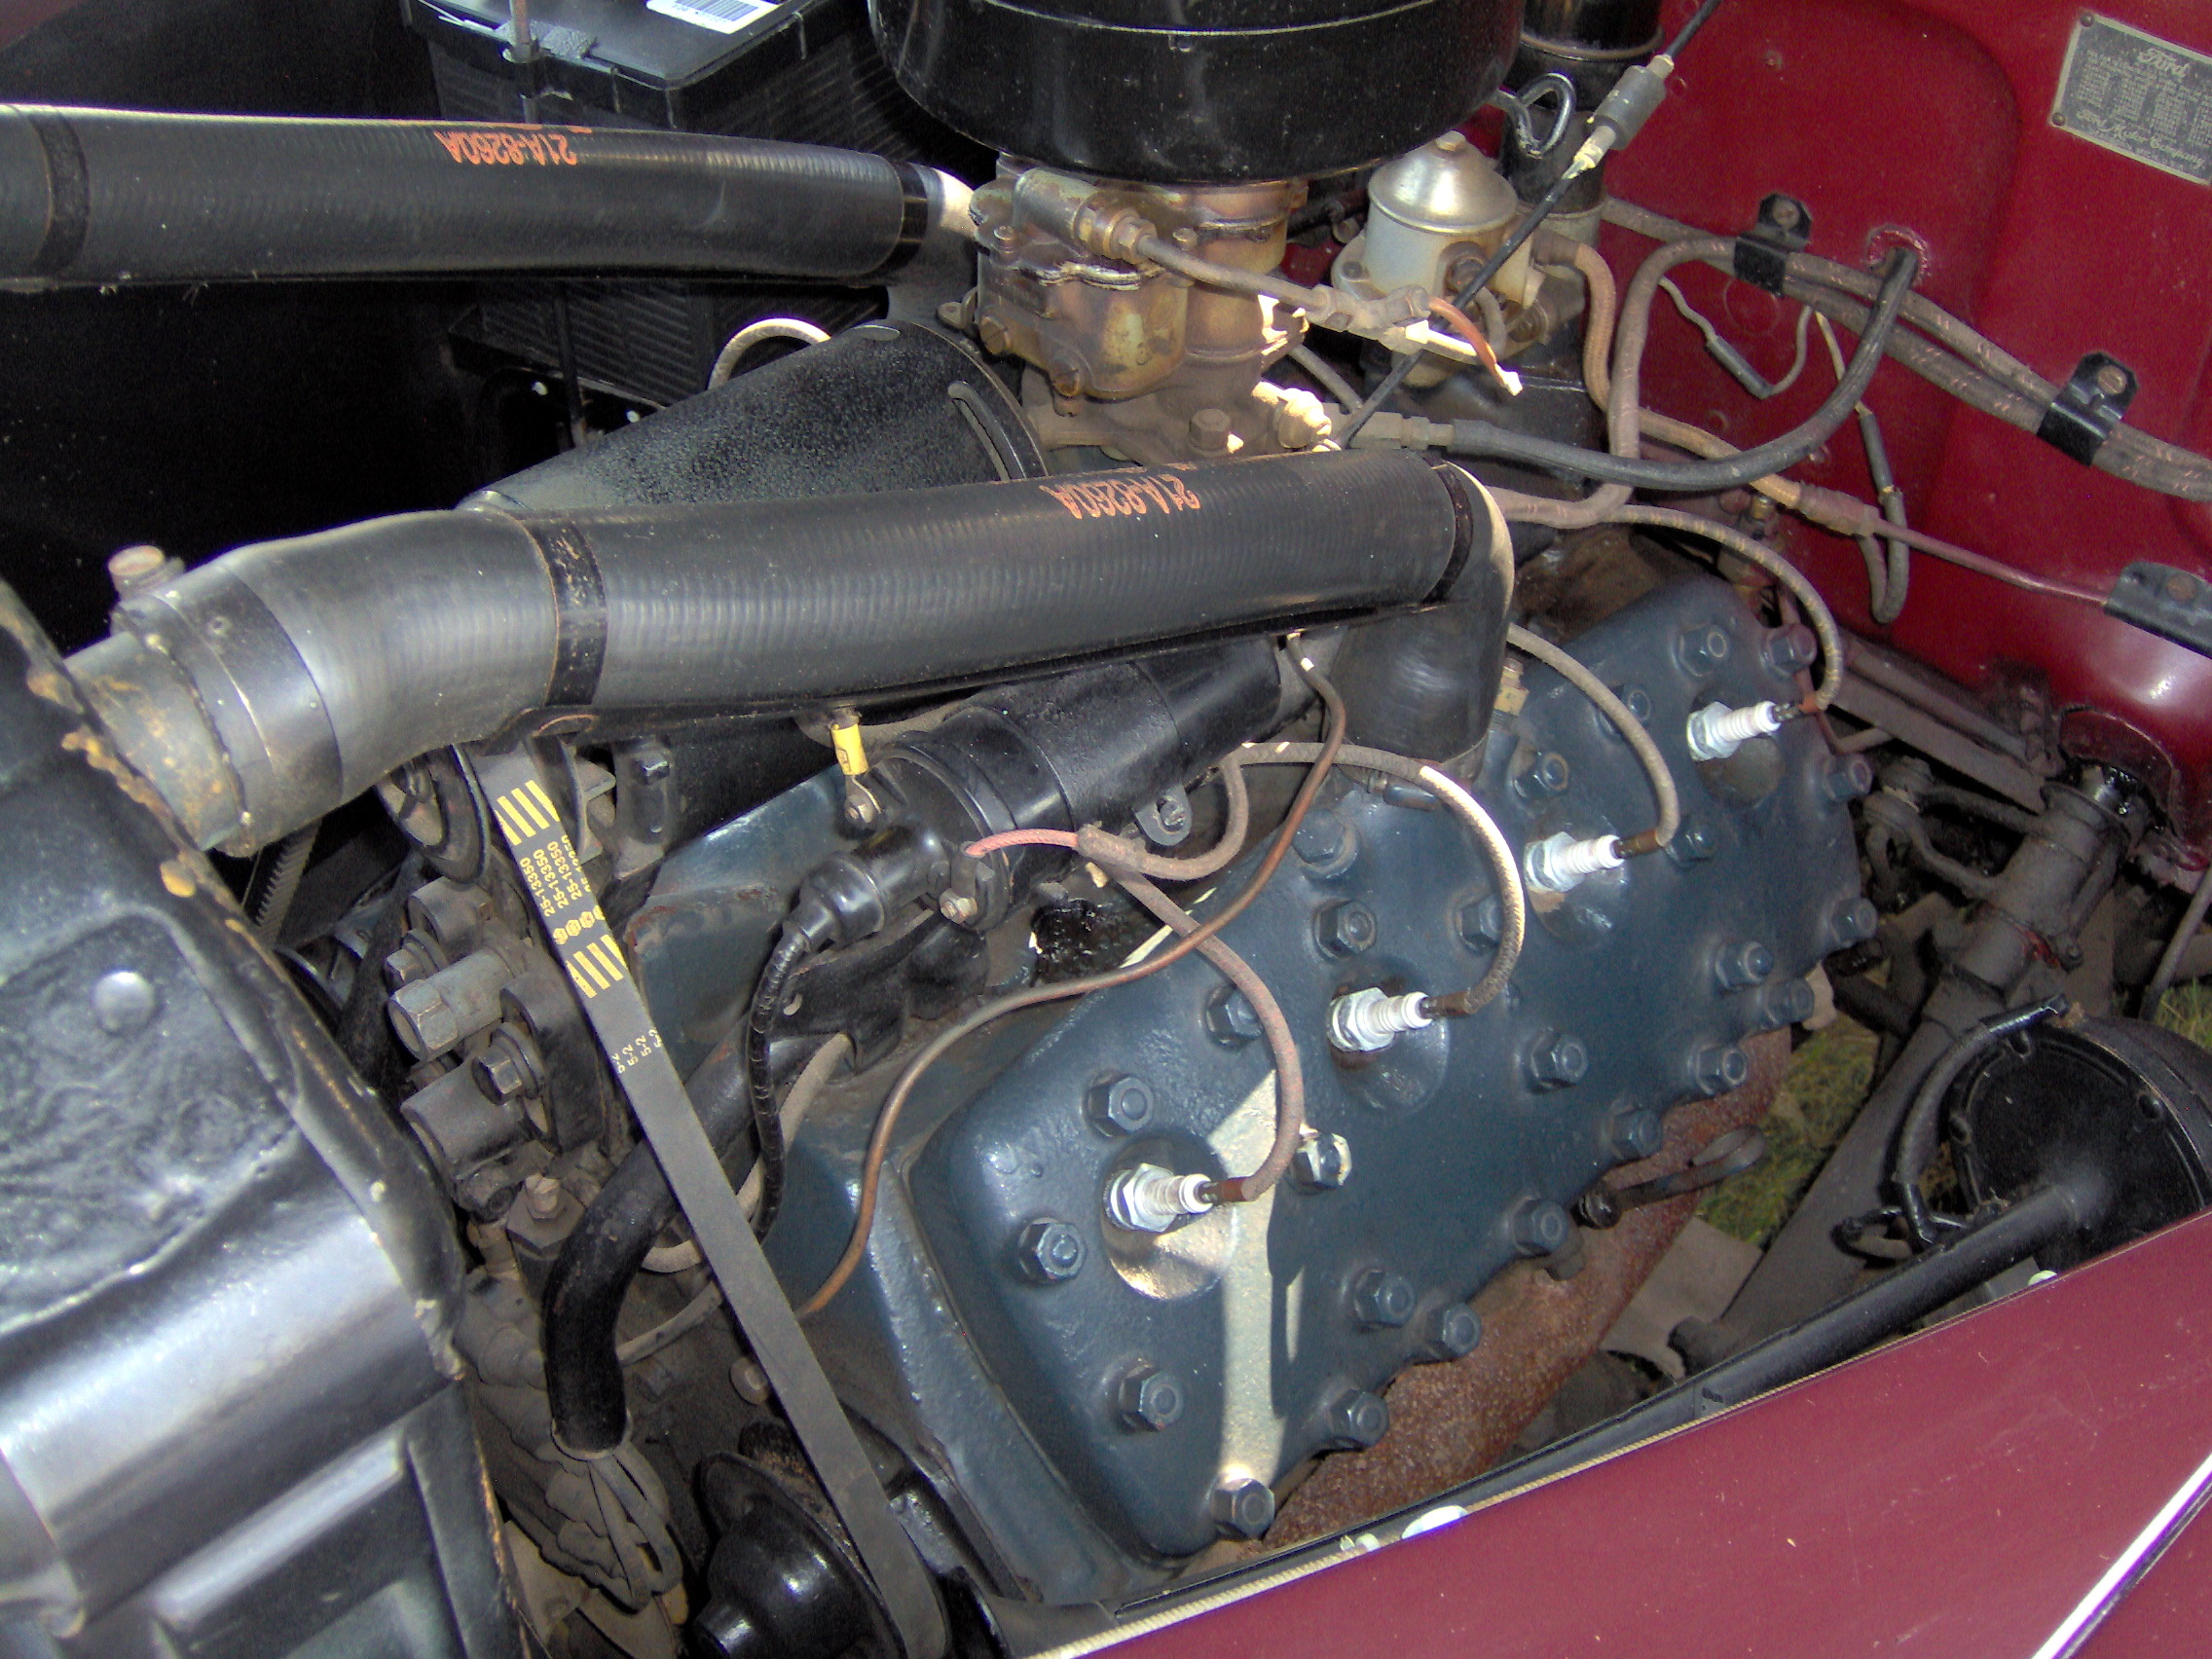 Ford flat engine #7